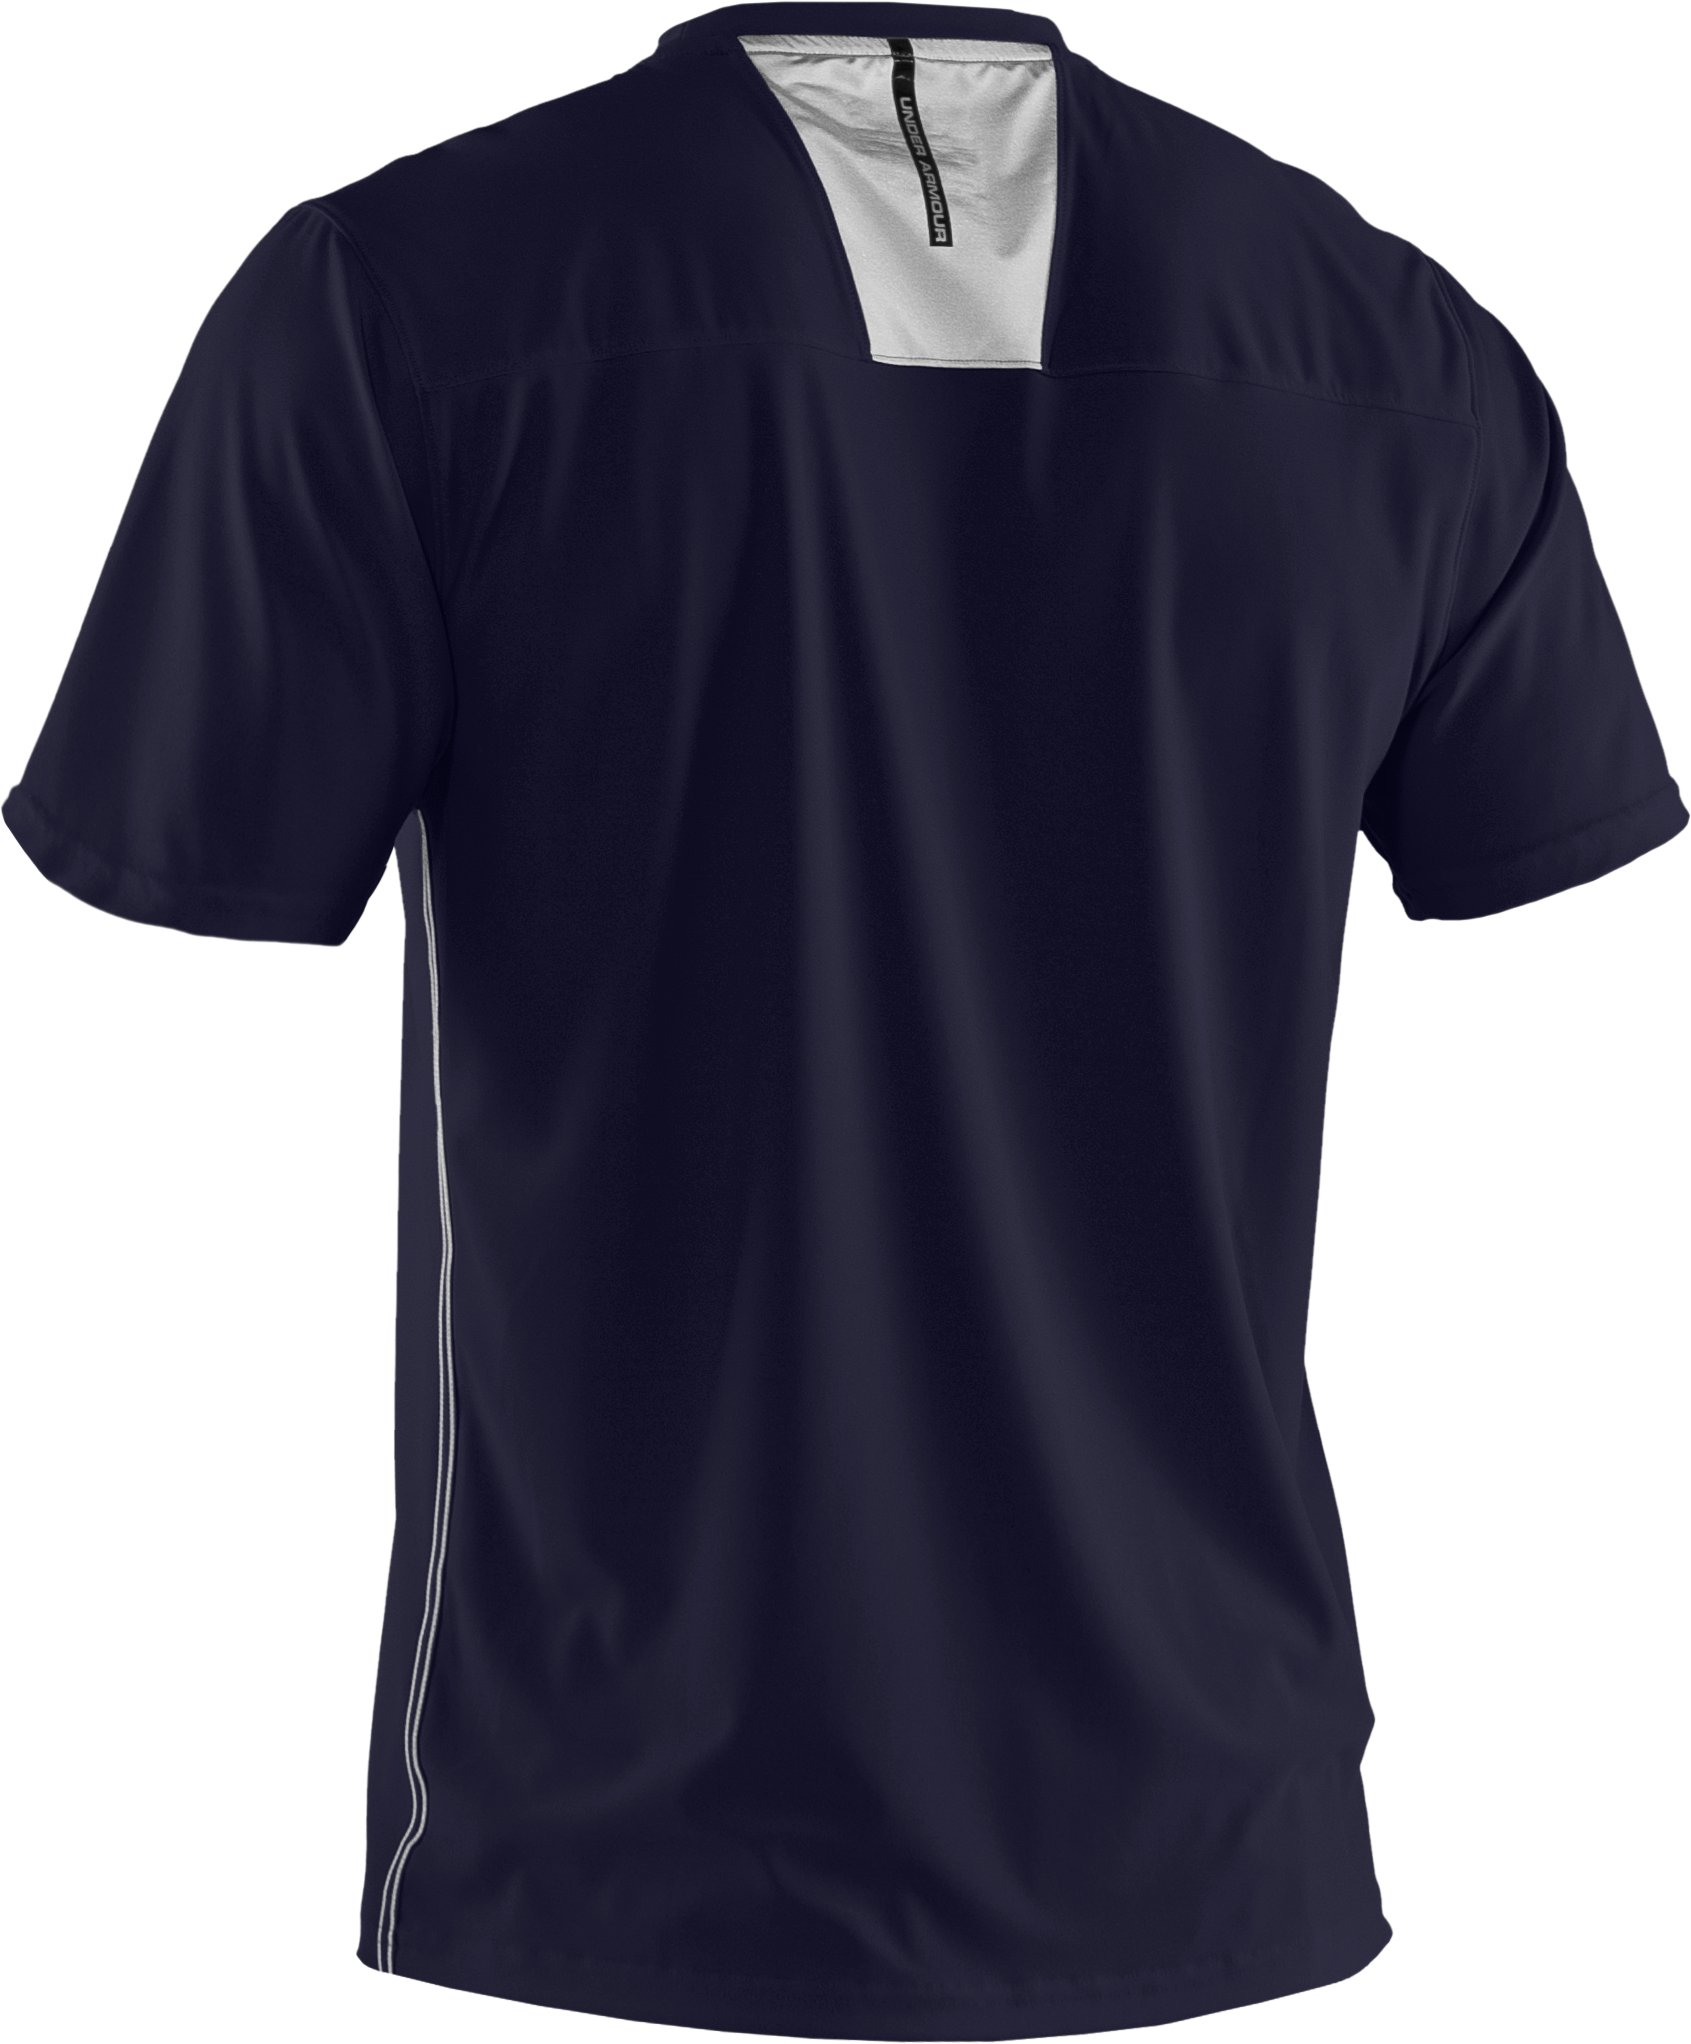 Men's coldblack® Short Sleeve T-Shirt, Midnight Navy, undefined